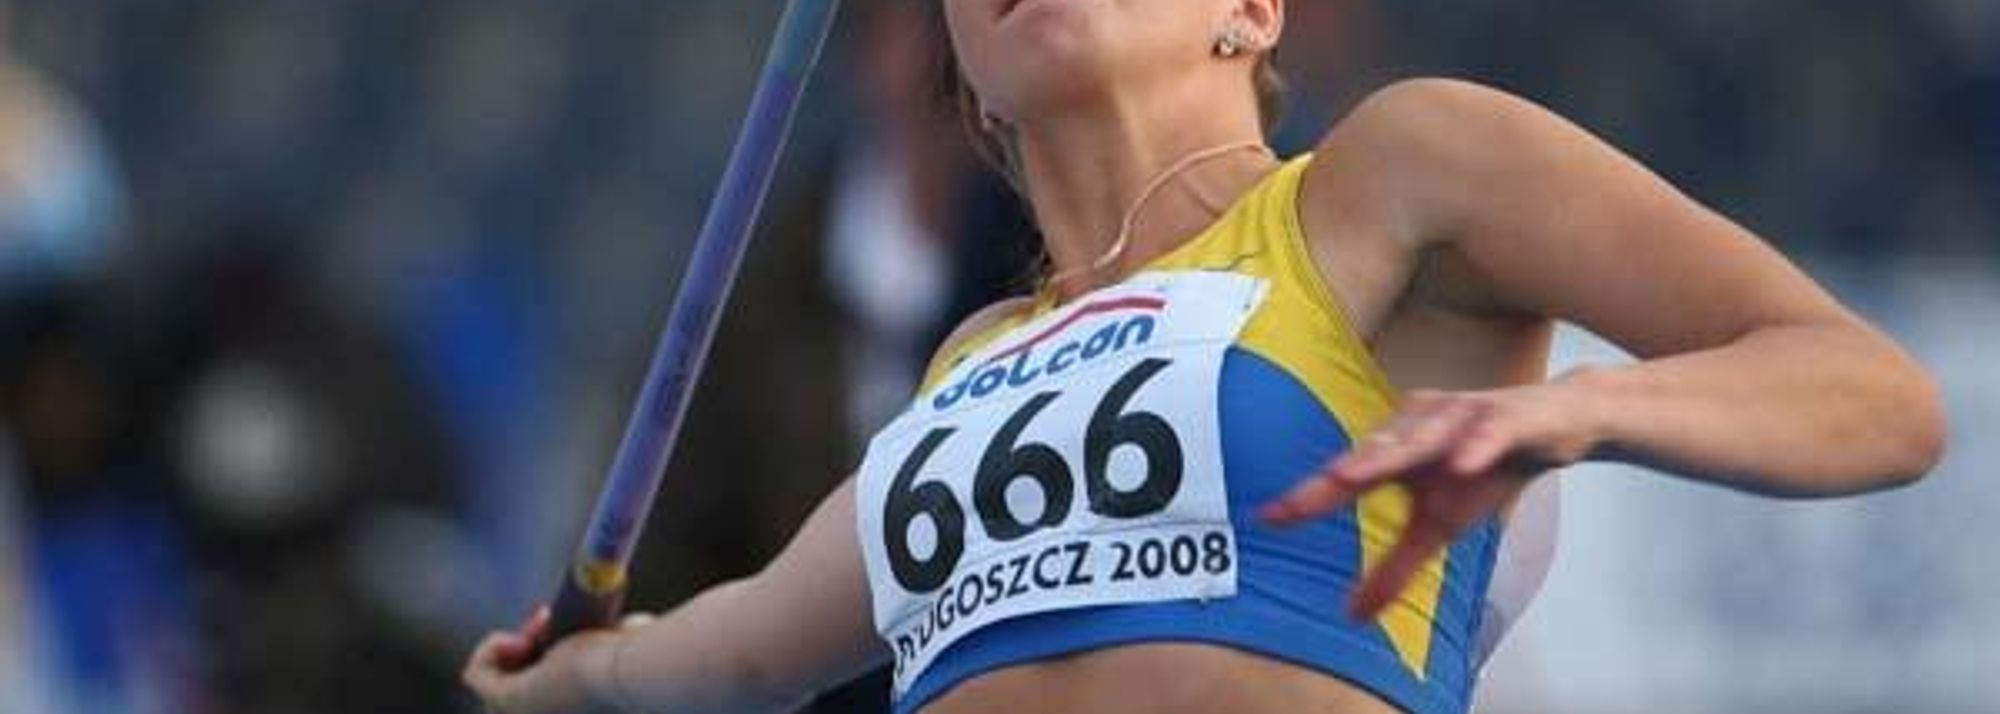 The 12th IAAF World Junior Championships held in the city of Bydgoszcz, Poland concluded on a high note in the Zawiska stadium yesterday afternoon as 12,000 spectators attended the sixth and final competition day.